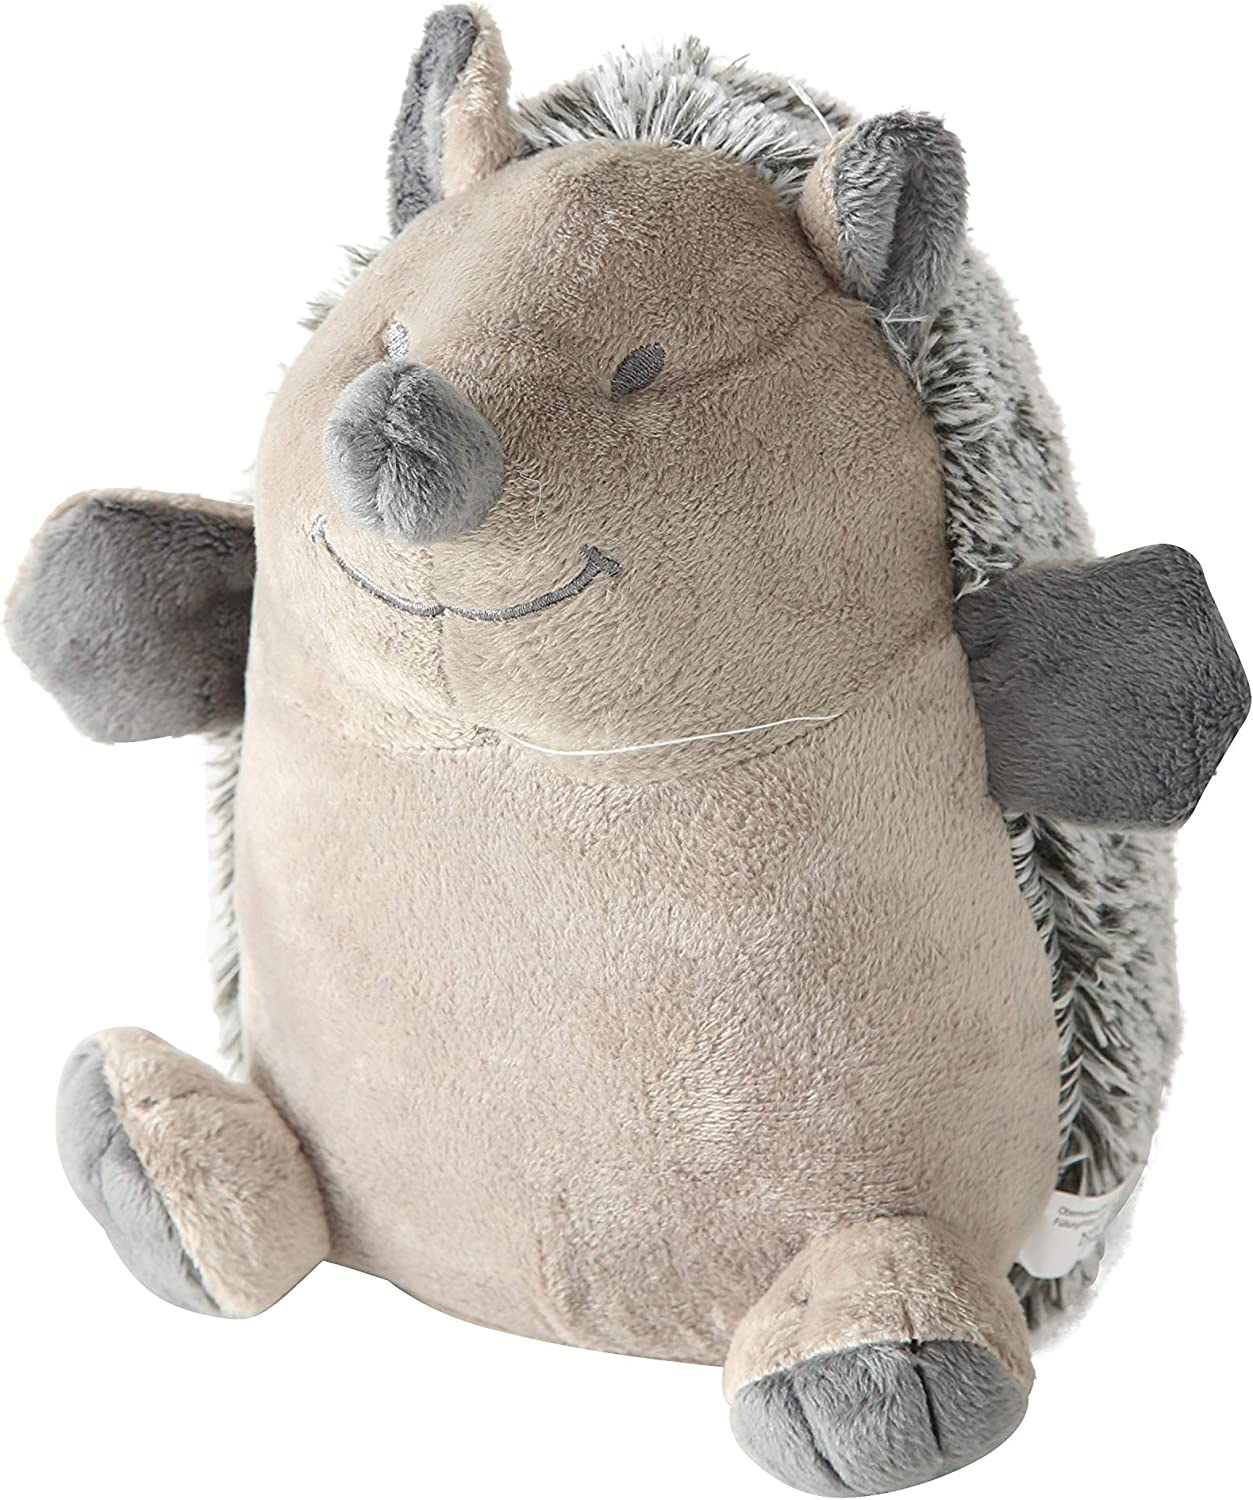 8 3//4 Diameter x 9 1//2 Inches Tall Plush Covered Gray Happy the Hedgehog Door Stopper Chubby Sand Filling Embroidery Smile and Eyes Weighted 2 Pounds Beige Polyester Paw Details Furry